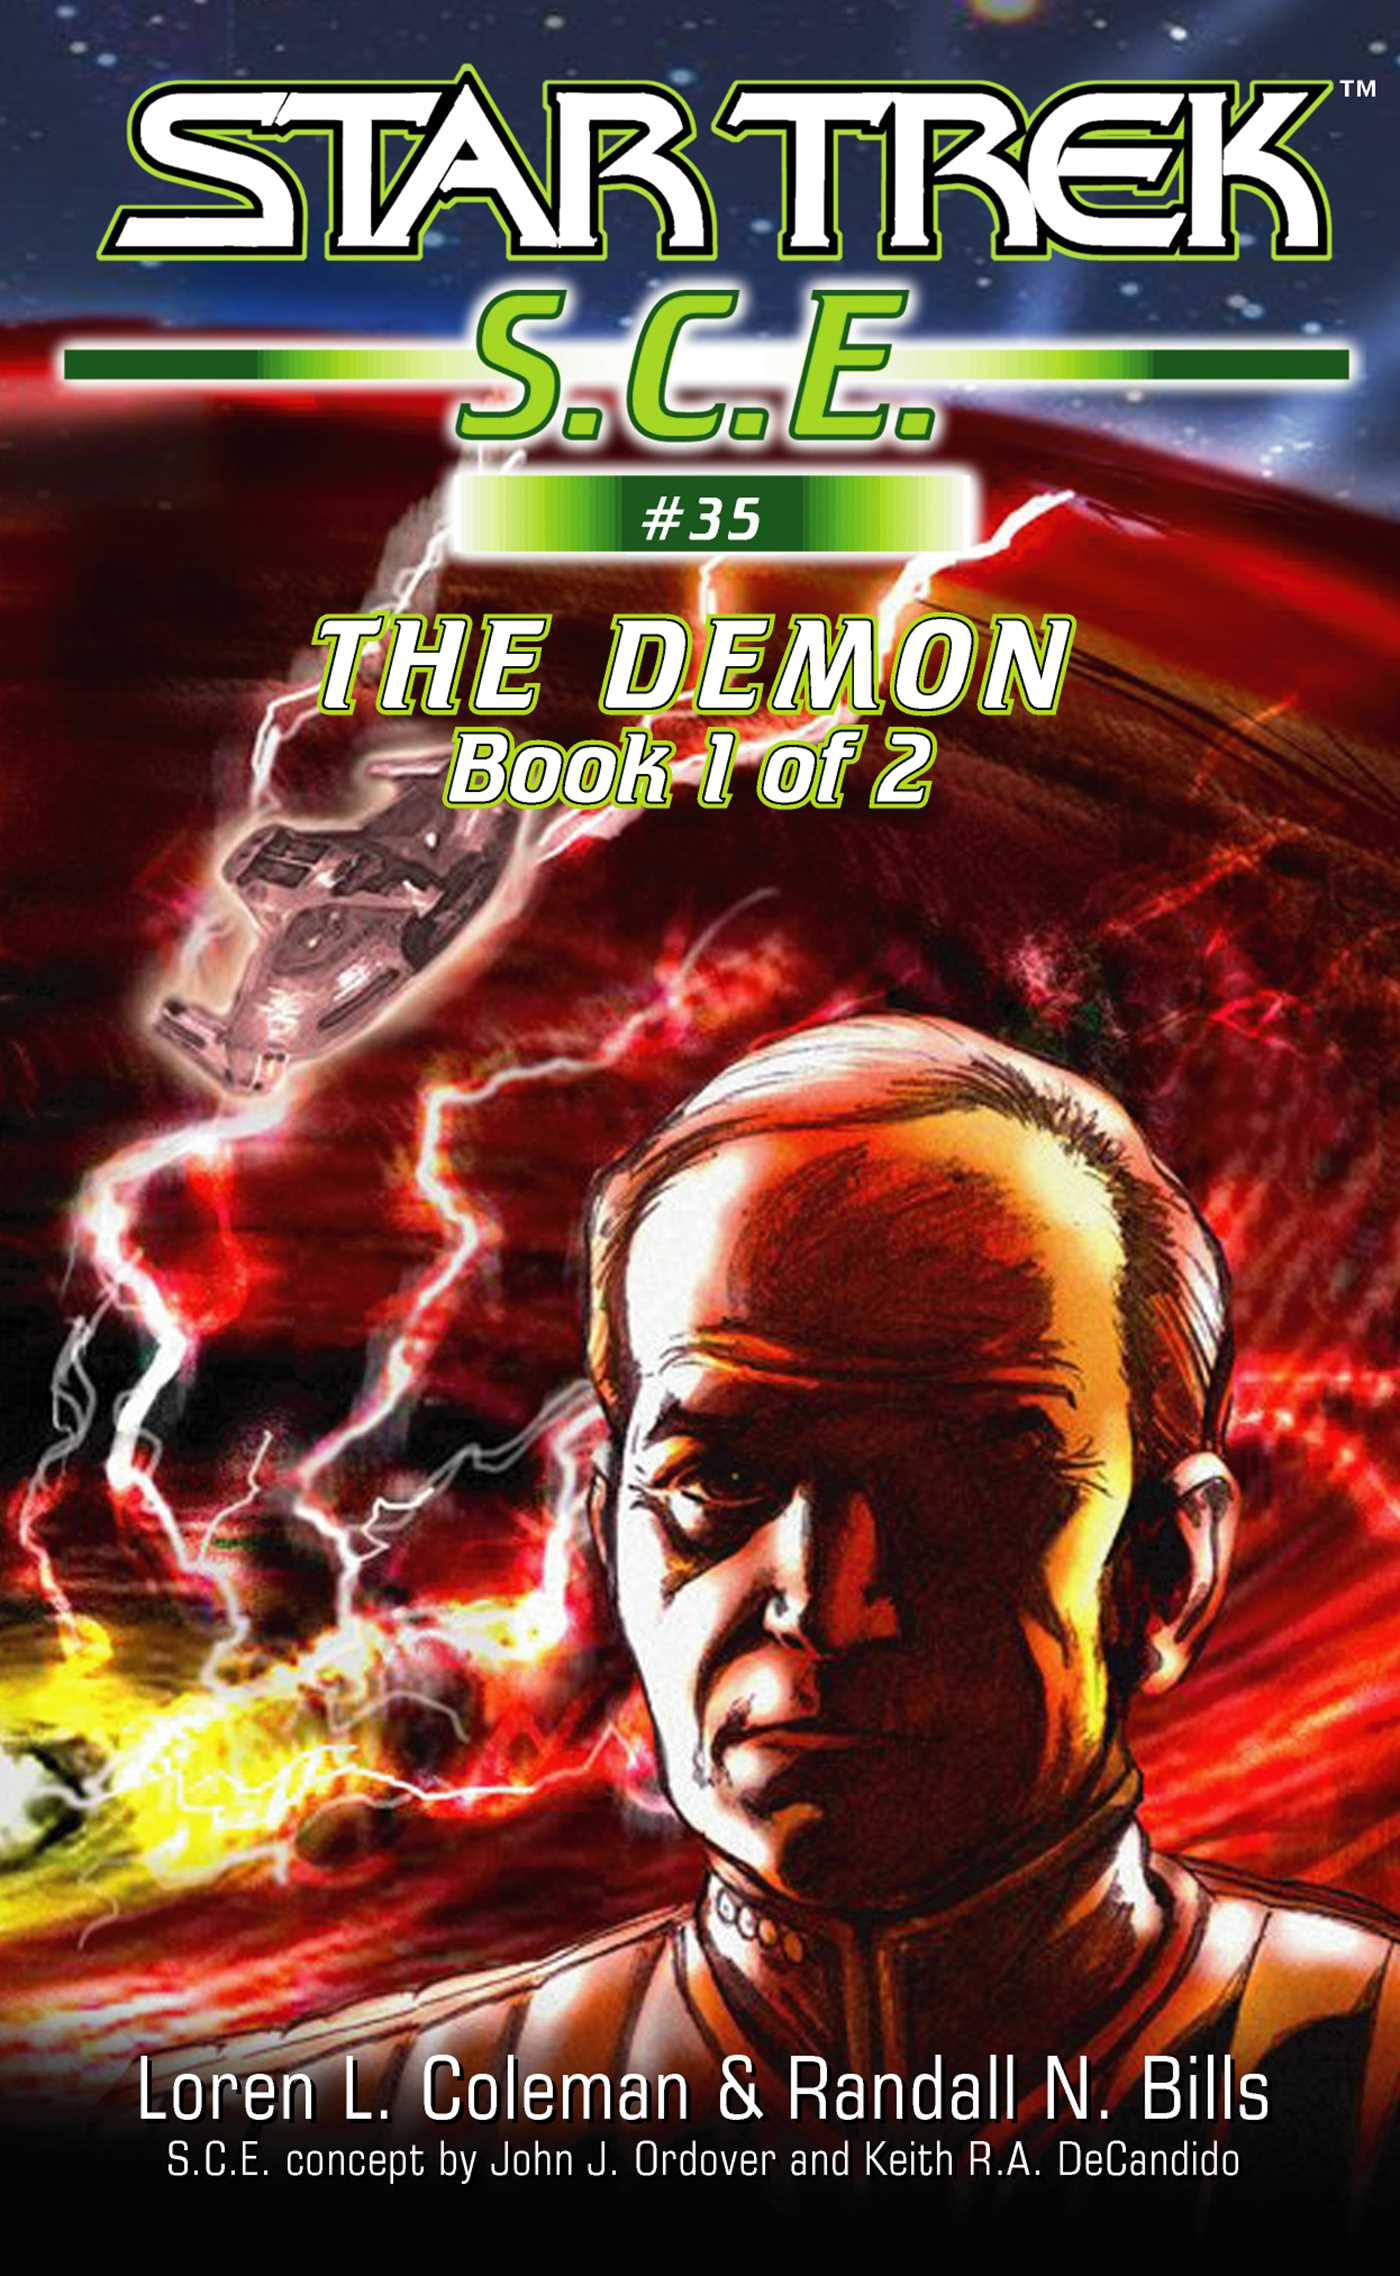 Star trek the demon book 1 9780743476096 hr